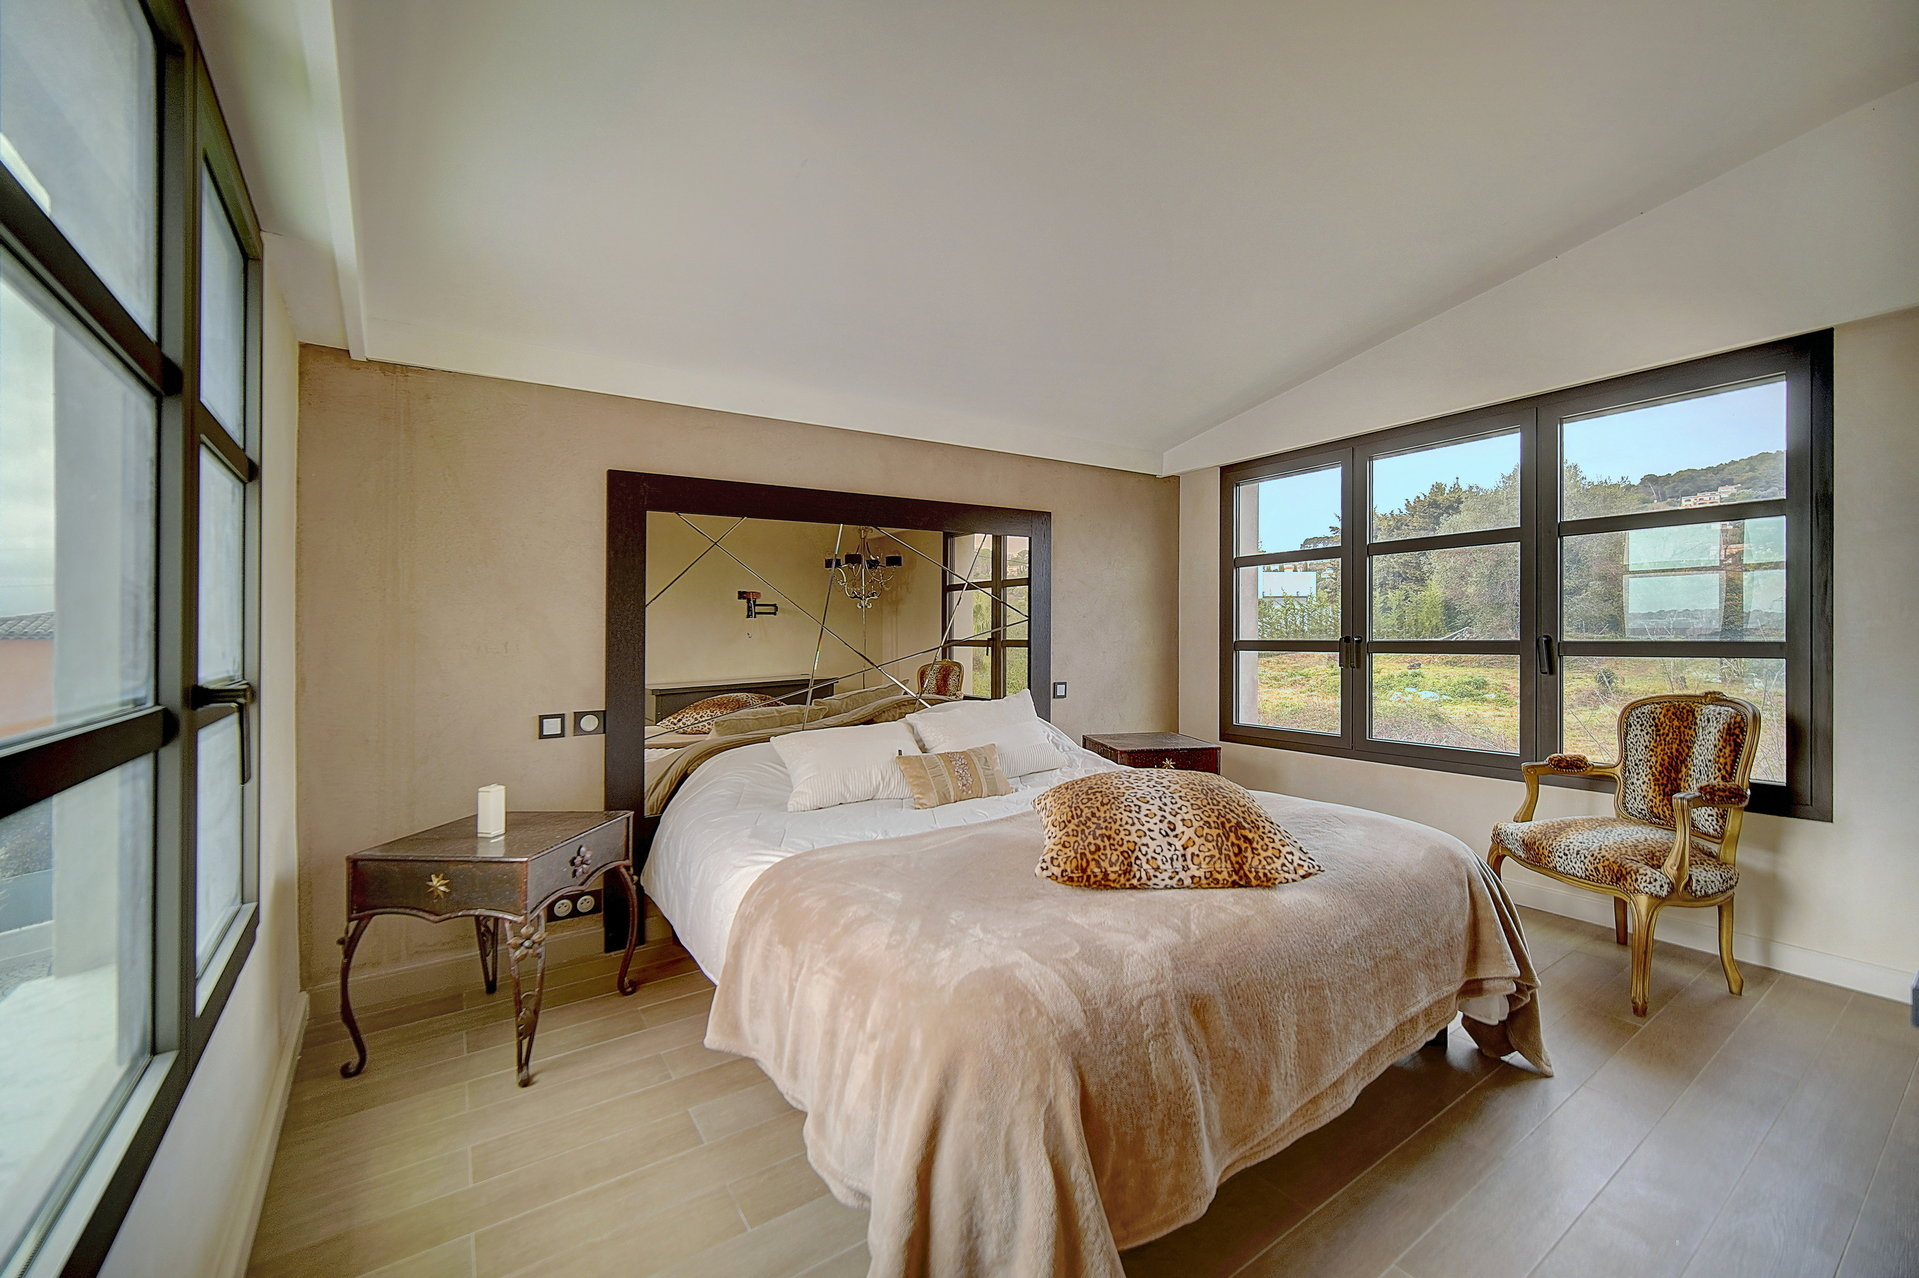 EXCLUSIVITE - MOUGINS RESIDENTIEL